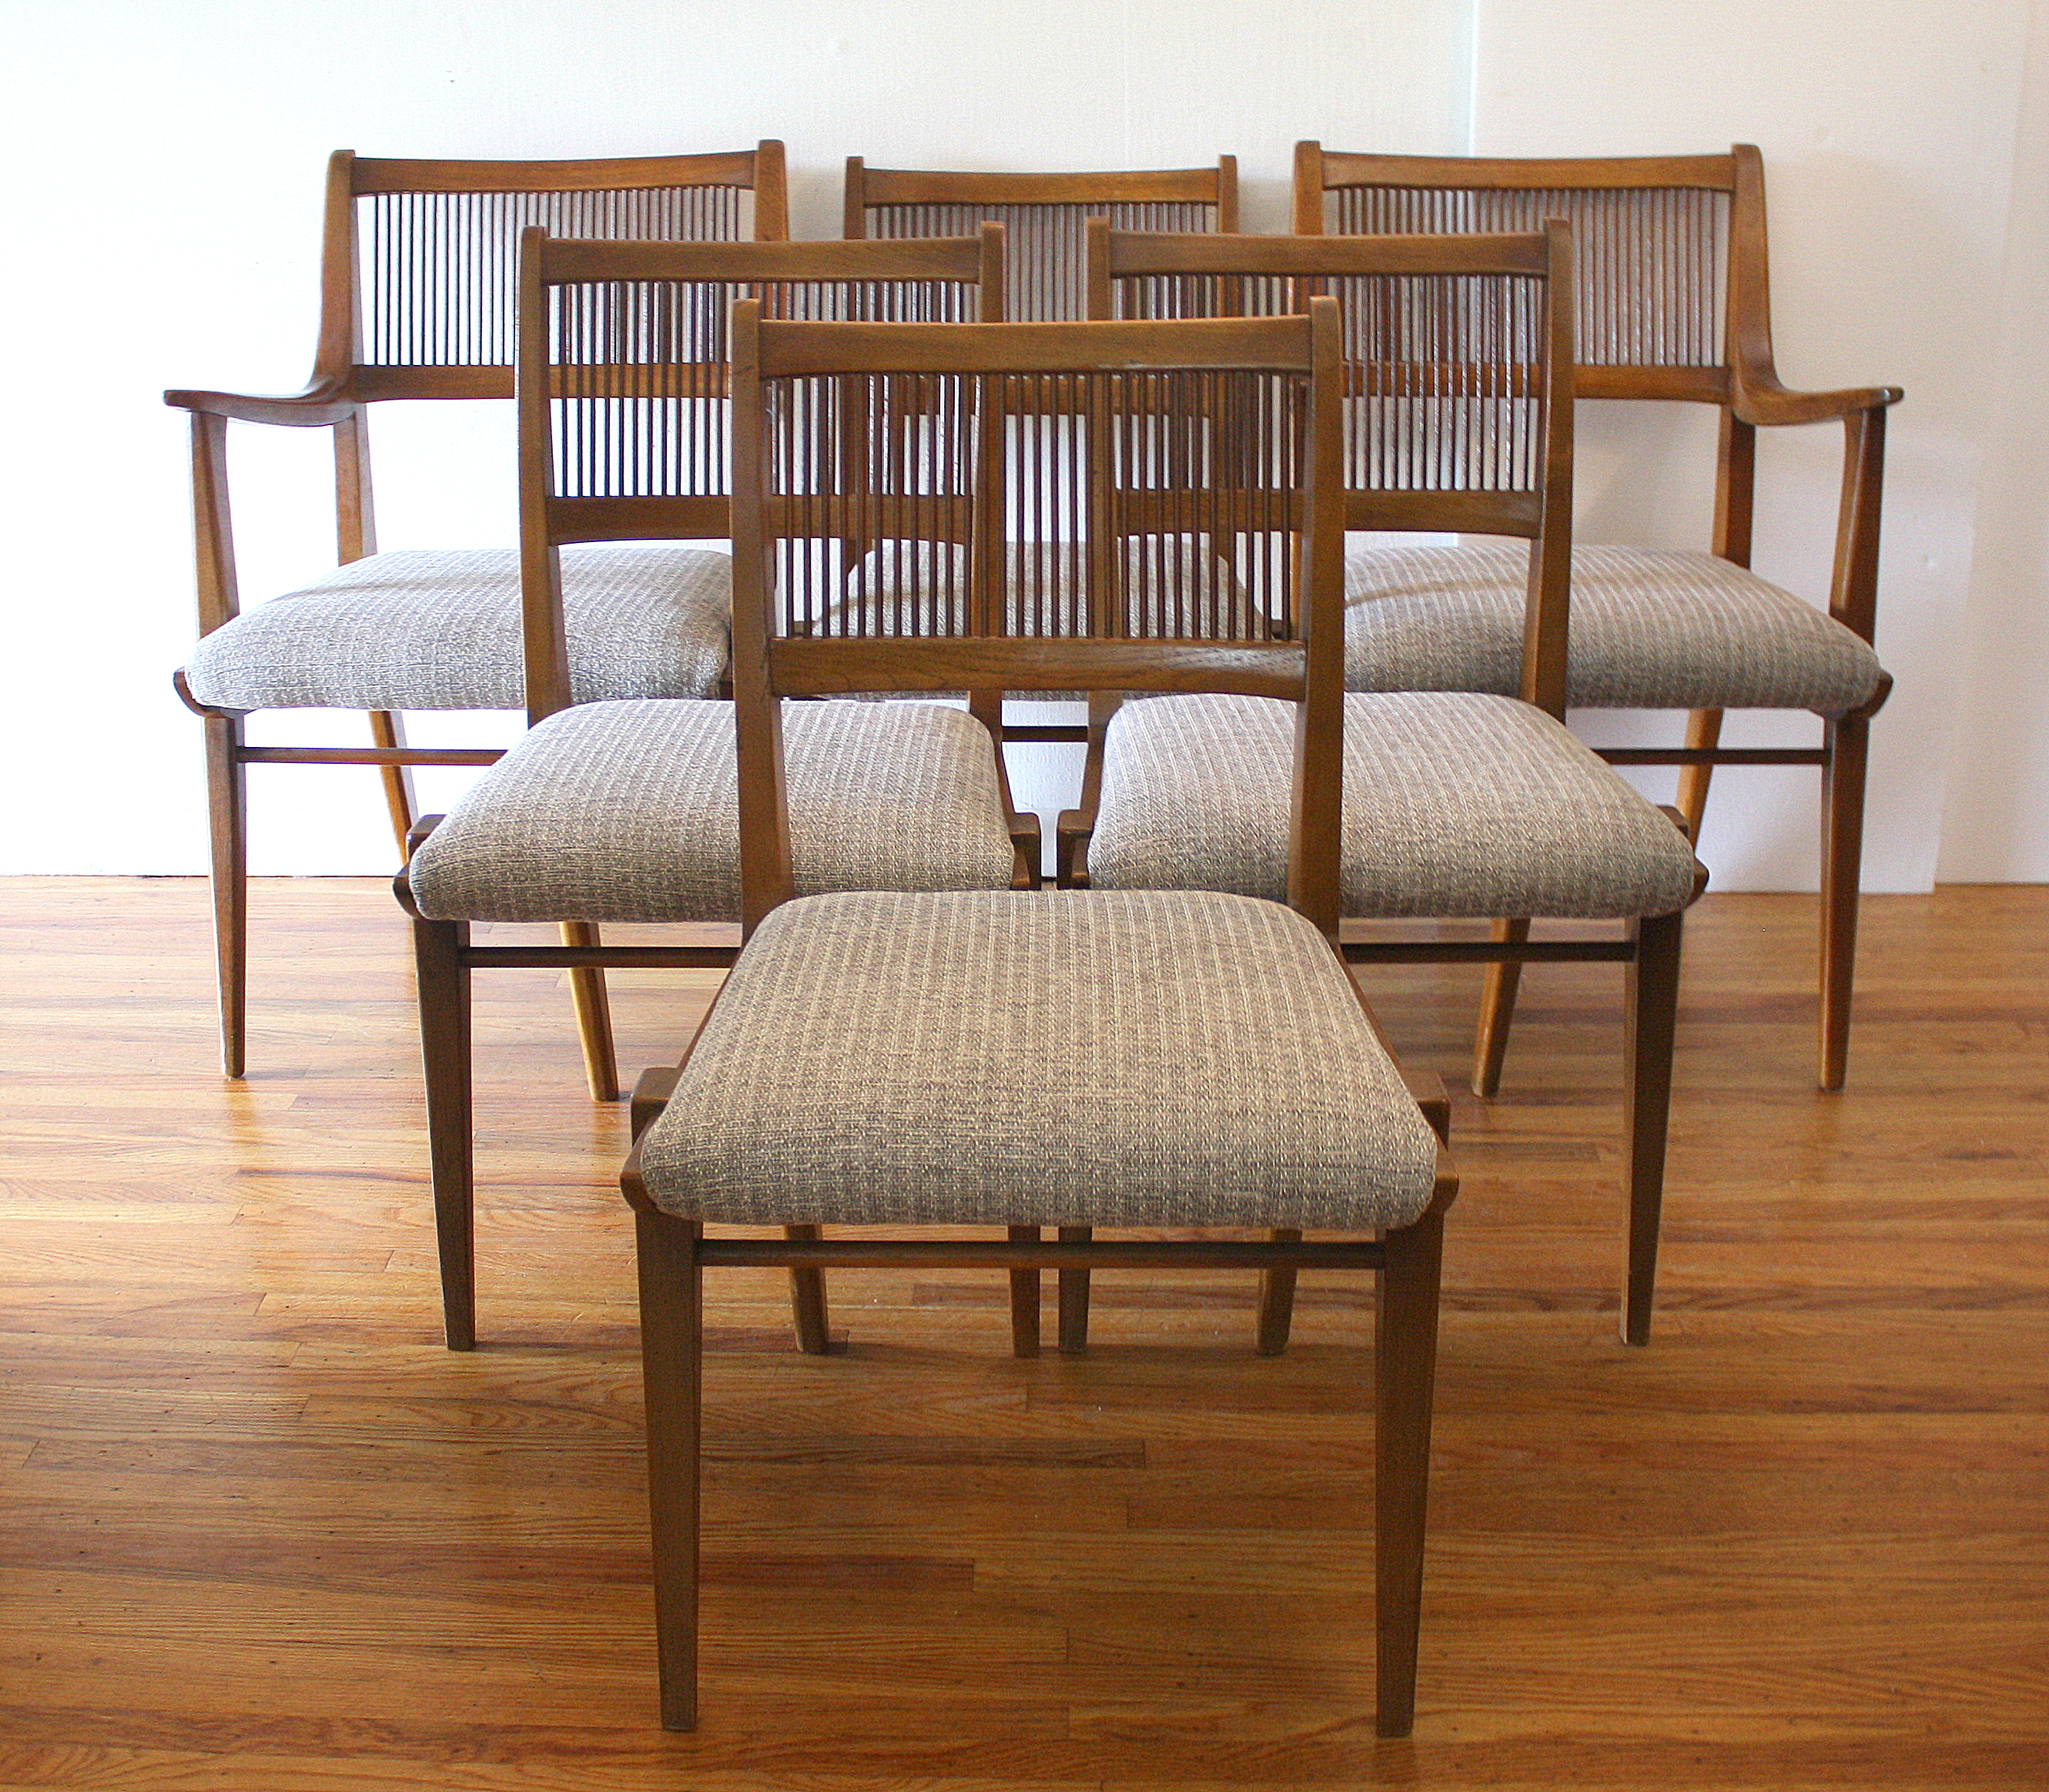 Drexel Chairs 1